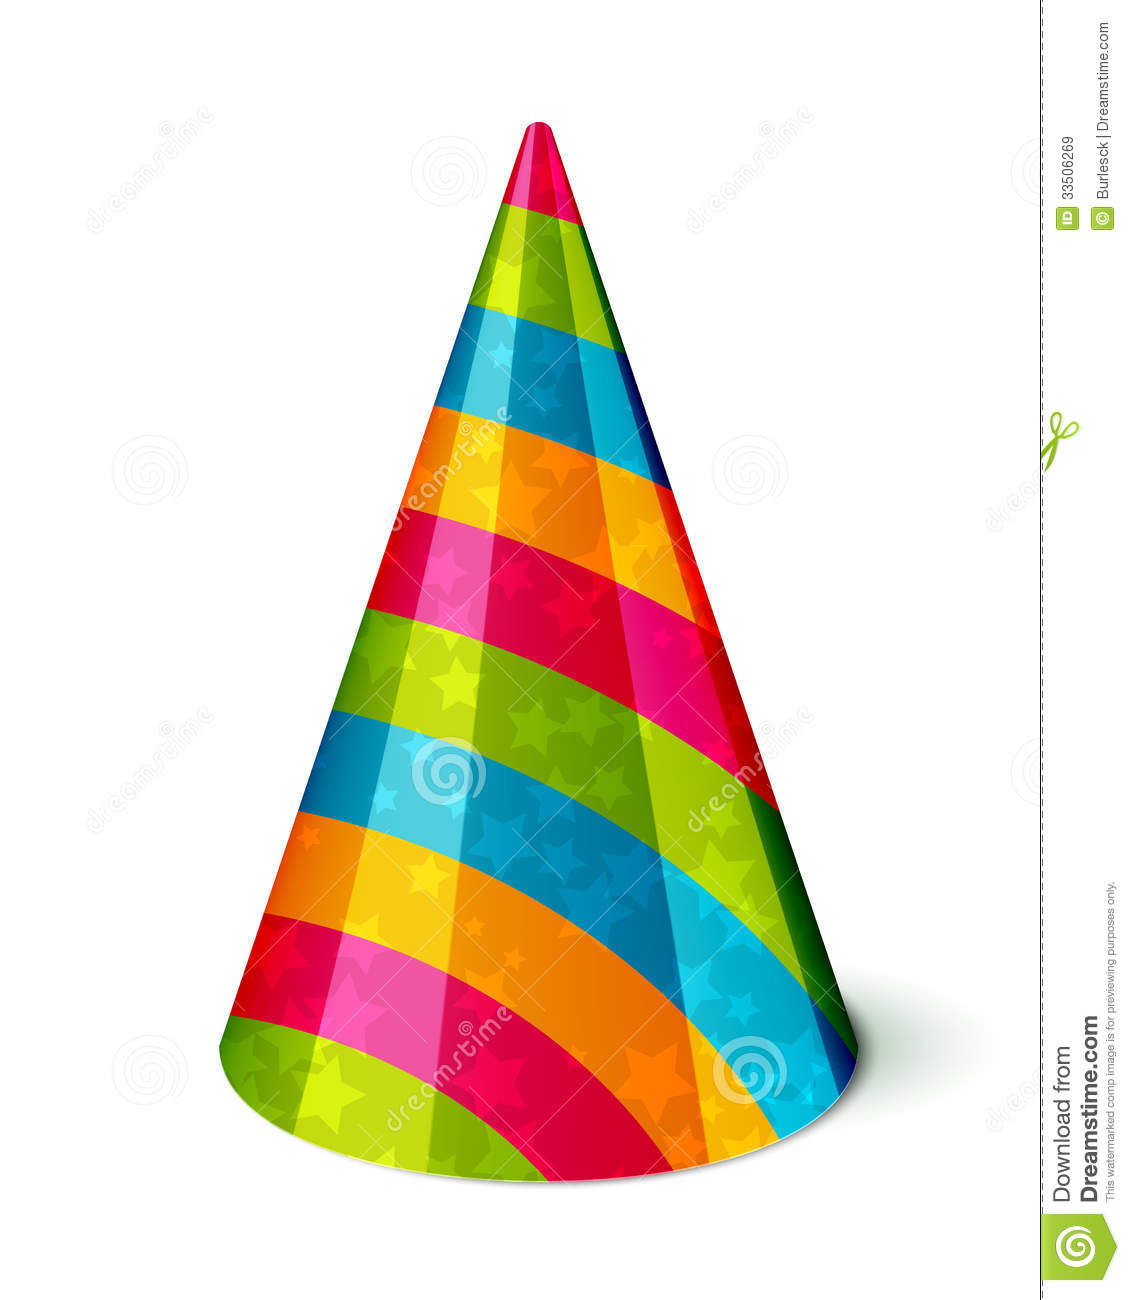 Party Hat Royalty Free Stock Images - Image: 33506269: https://www.dreamstime.com/royalty-free-stock-images-party-hat...